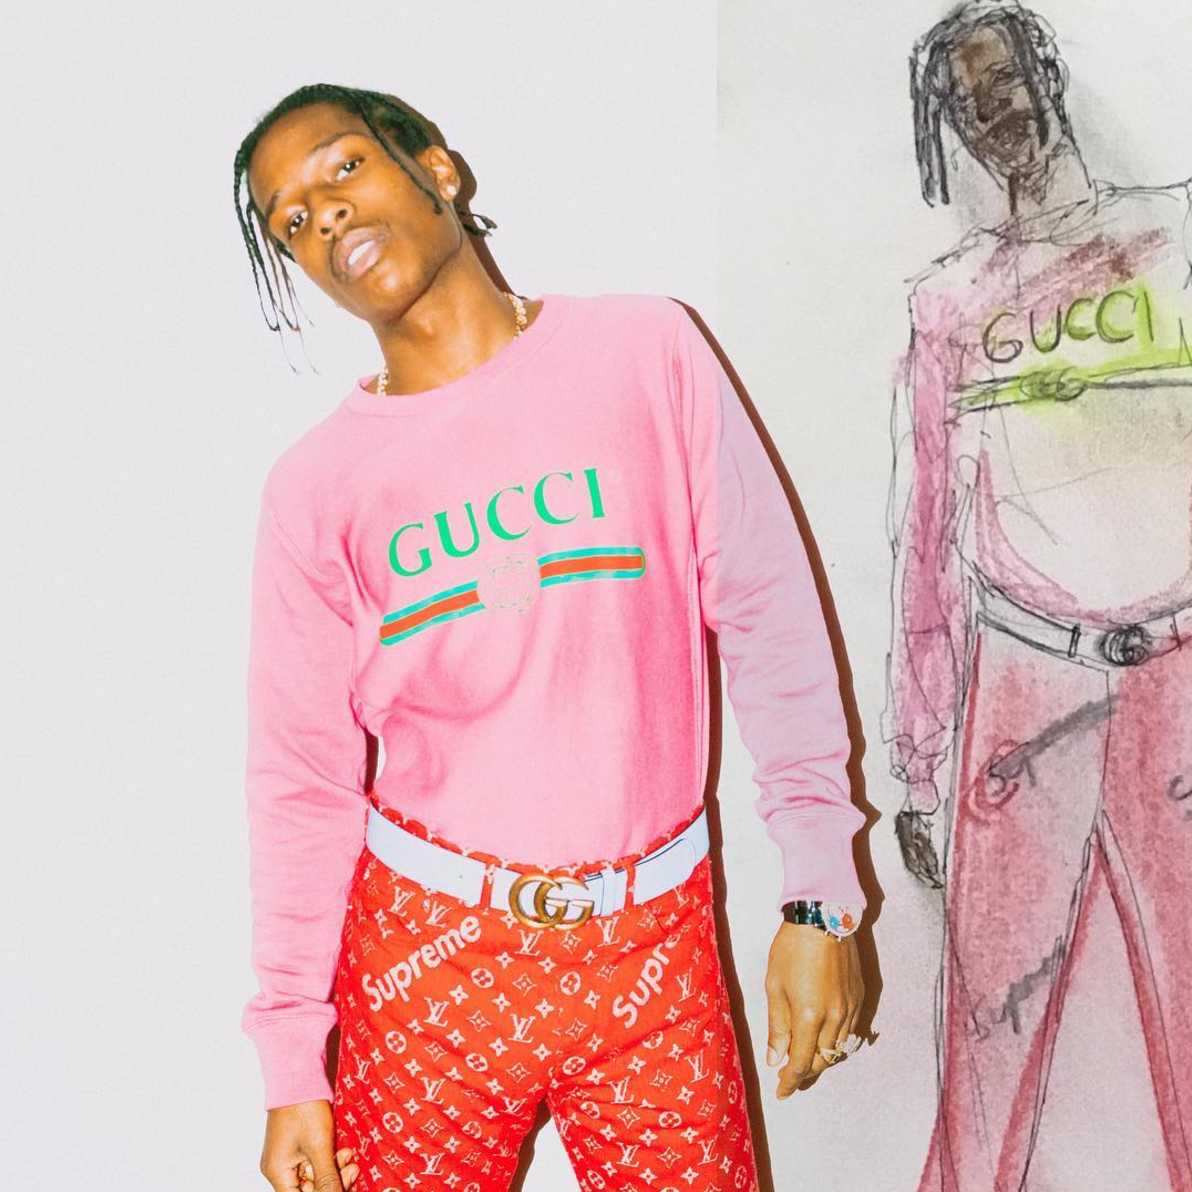 SPOTTED: A$AP Rocky In Gucci Sweater And 1/1 Supreme x Louis Vuitton Pants